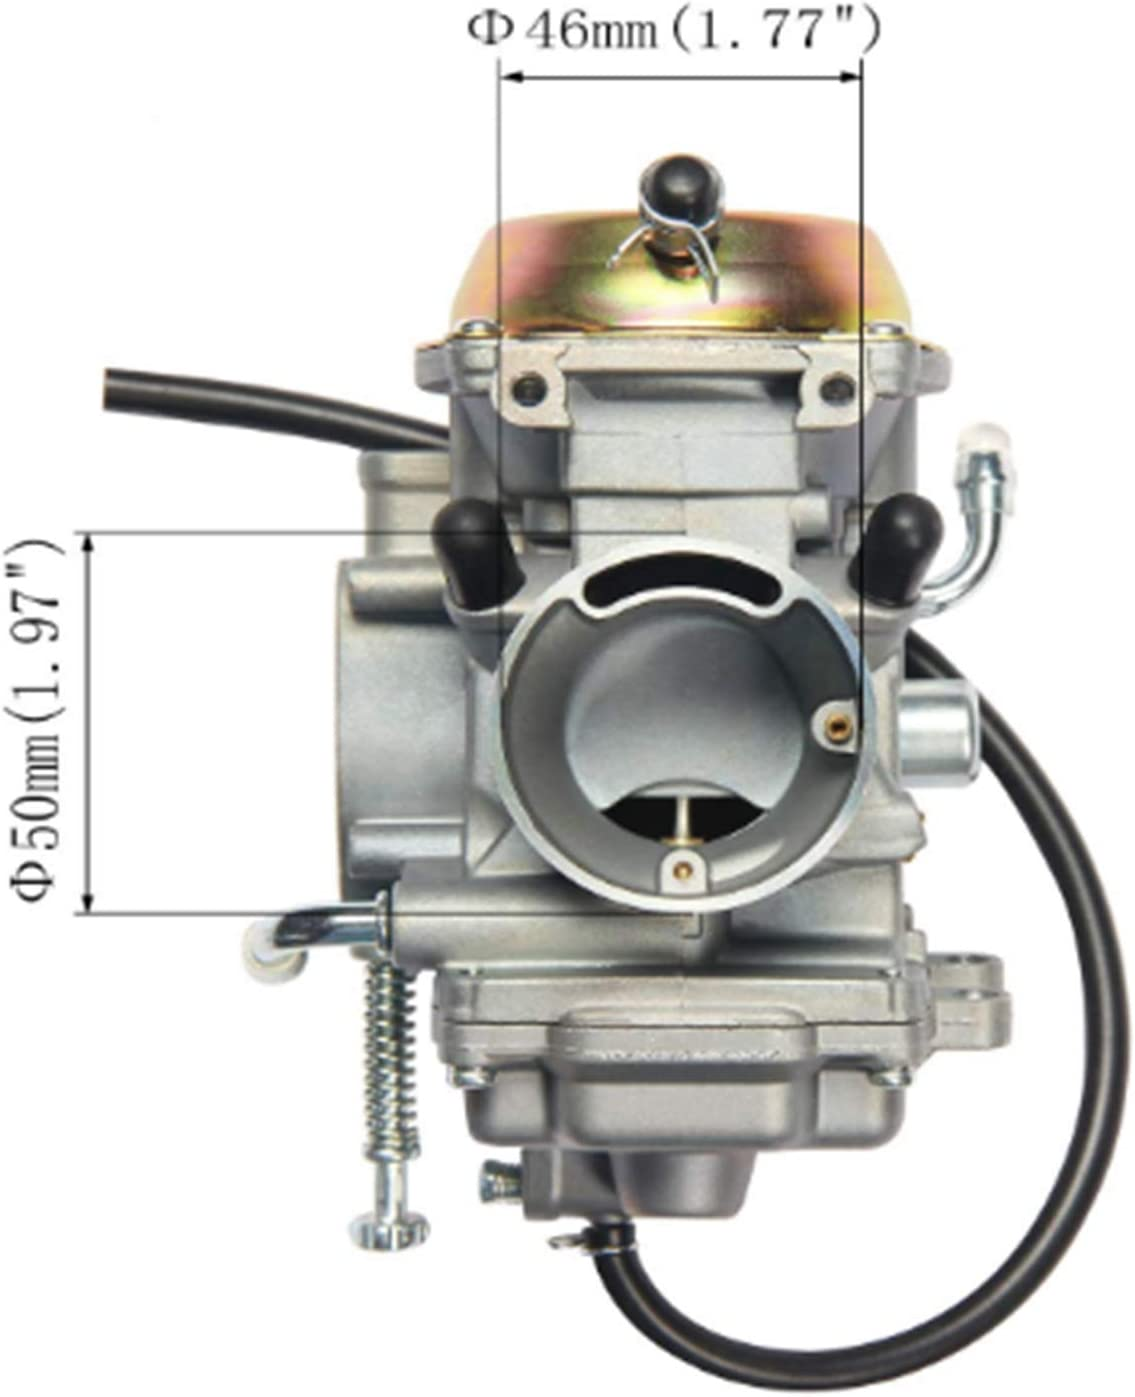 New Carburetor Assembly for Brand new Polaris 313 shipfree Boss Trail 2003-2013 330